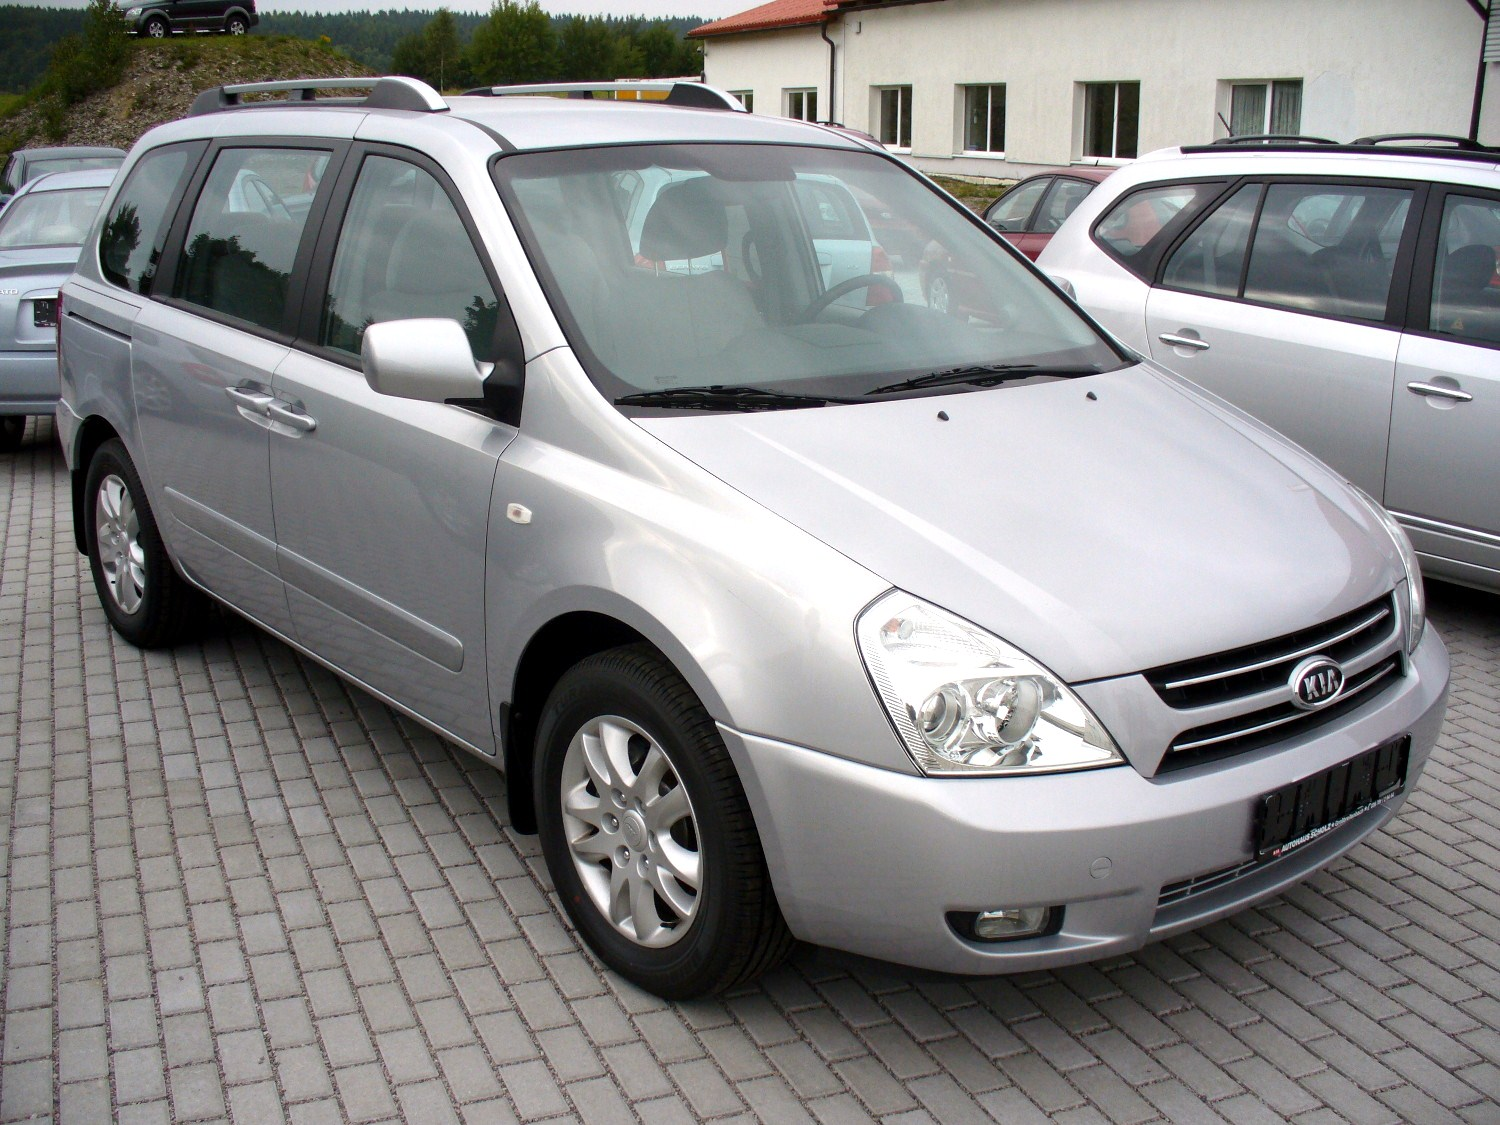 Kia Carnival 2.9 CRDi photo 02